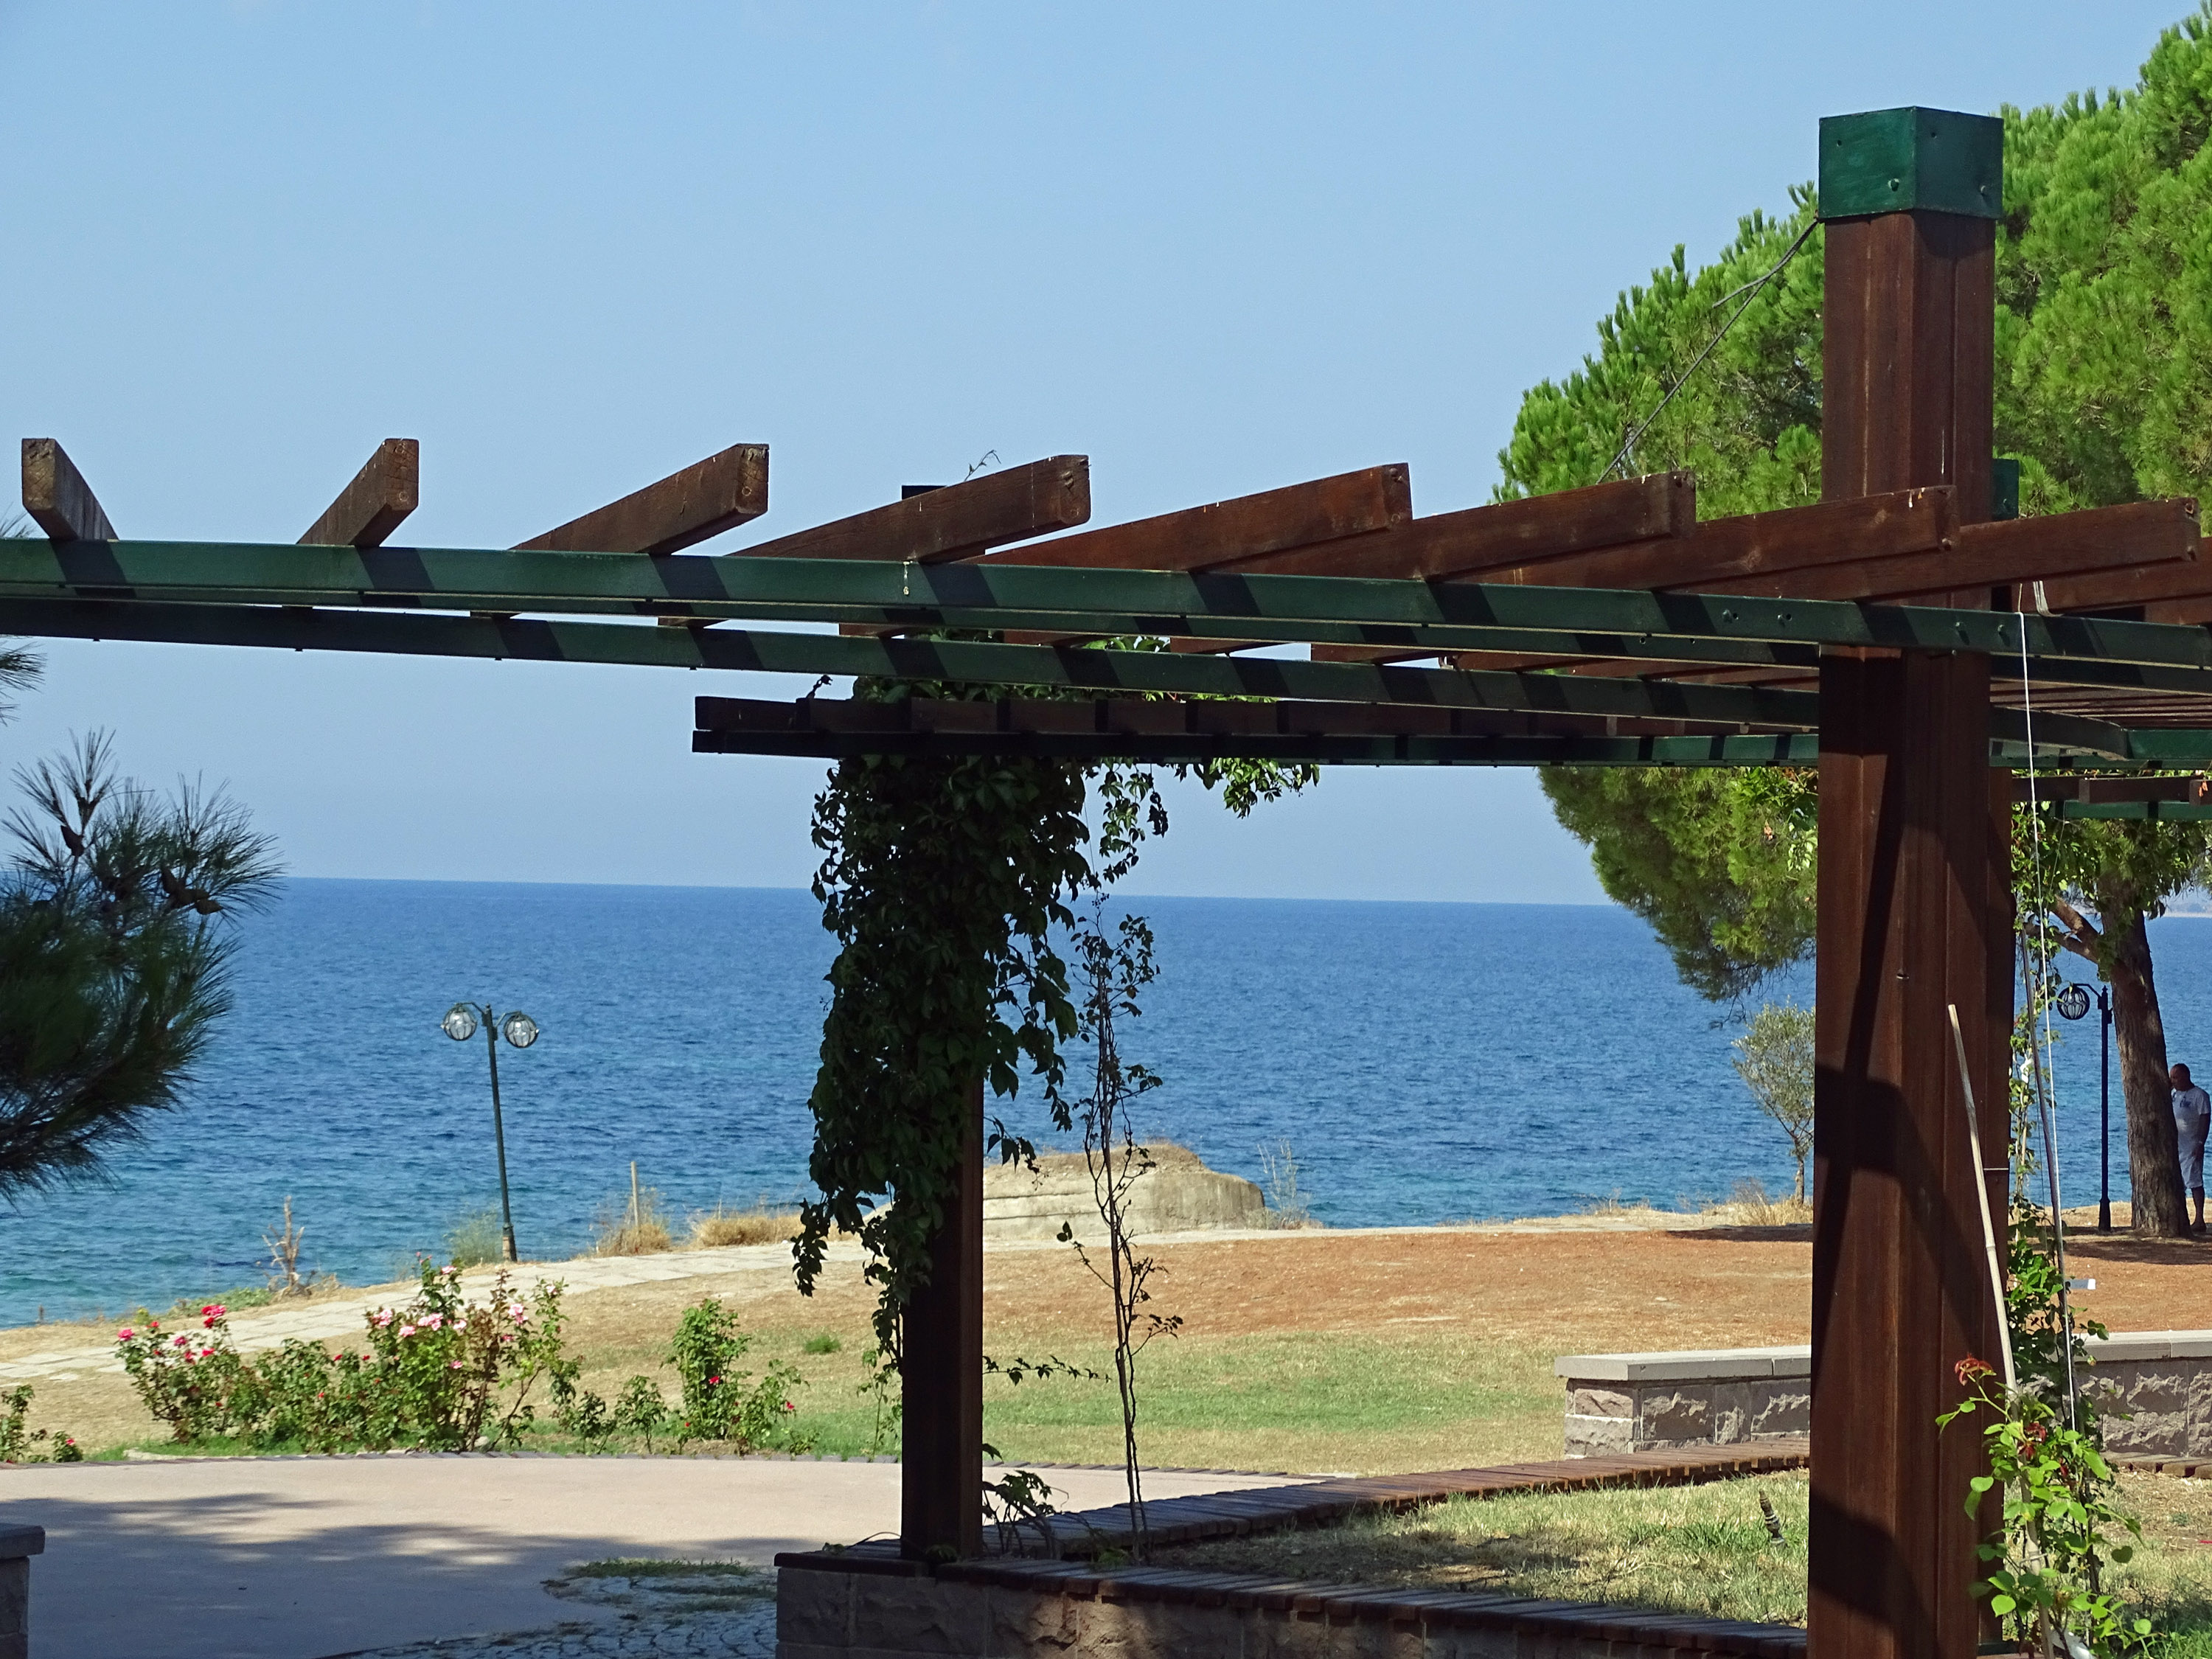 Looking over the Dardanelles